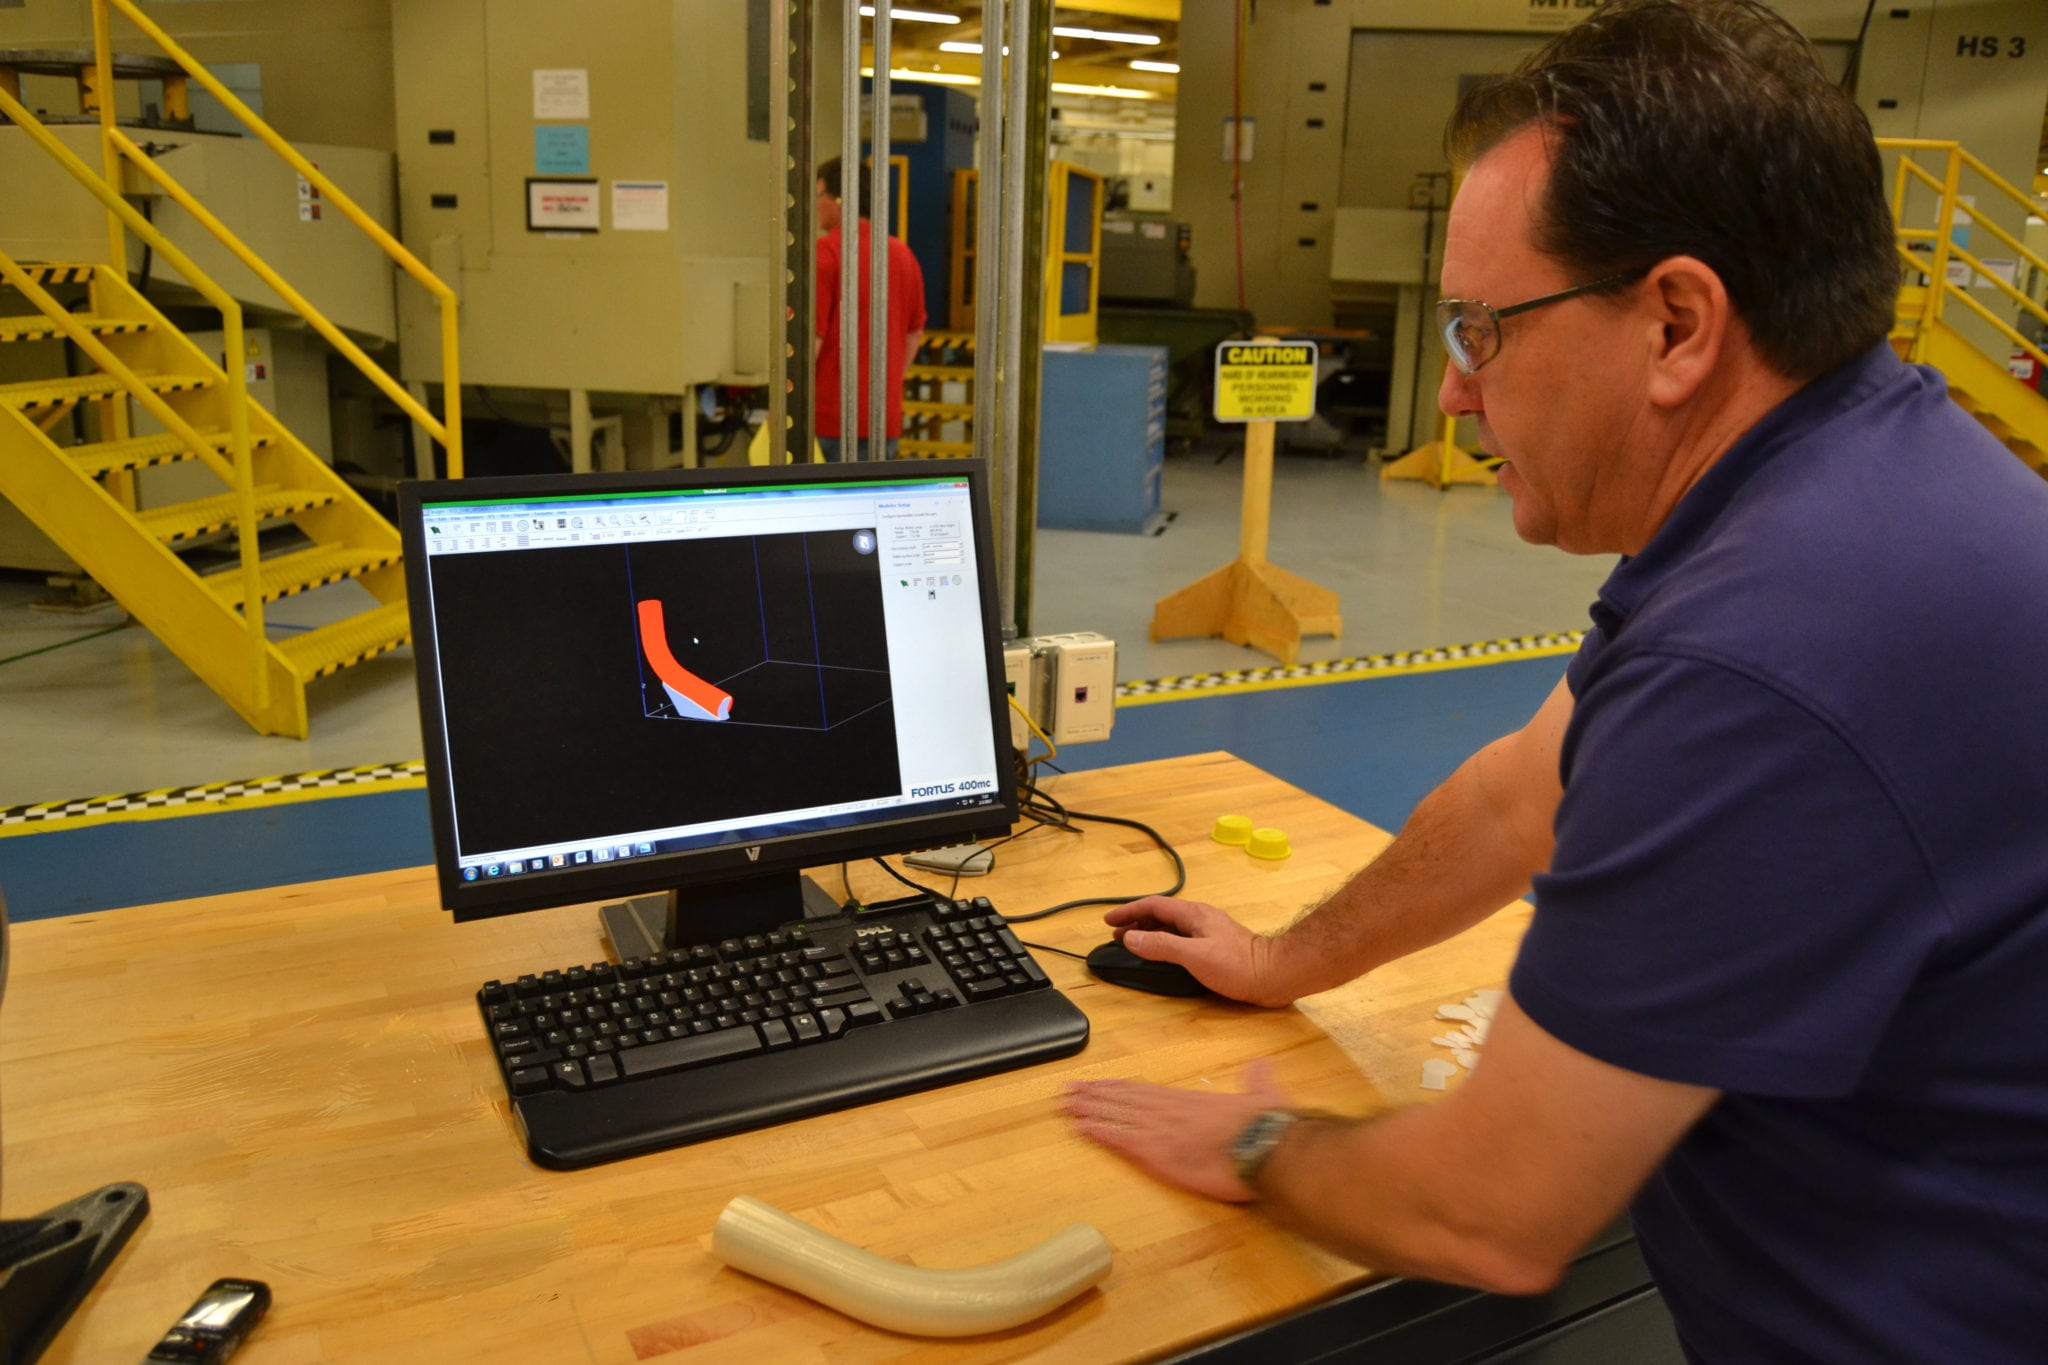 170202-N-LQ867-001 JACKSONVILLE, Fla. (Feb. 2, 2017) Randy Meeker, an Fleet Readiness Center Southeast tooling designer, shows how a piece of environmental duct for a T-44 Pegasus was designed and created with a 3D printer in the facility's manufacturing department. (U.S. Navy photo by Clifford Davis/Released)